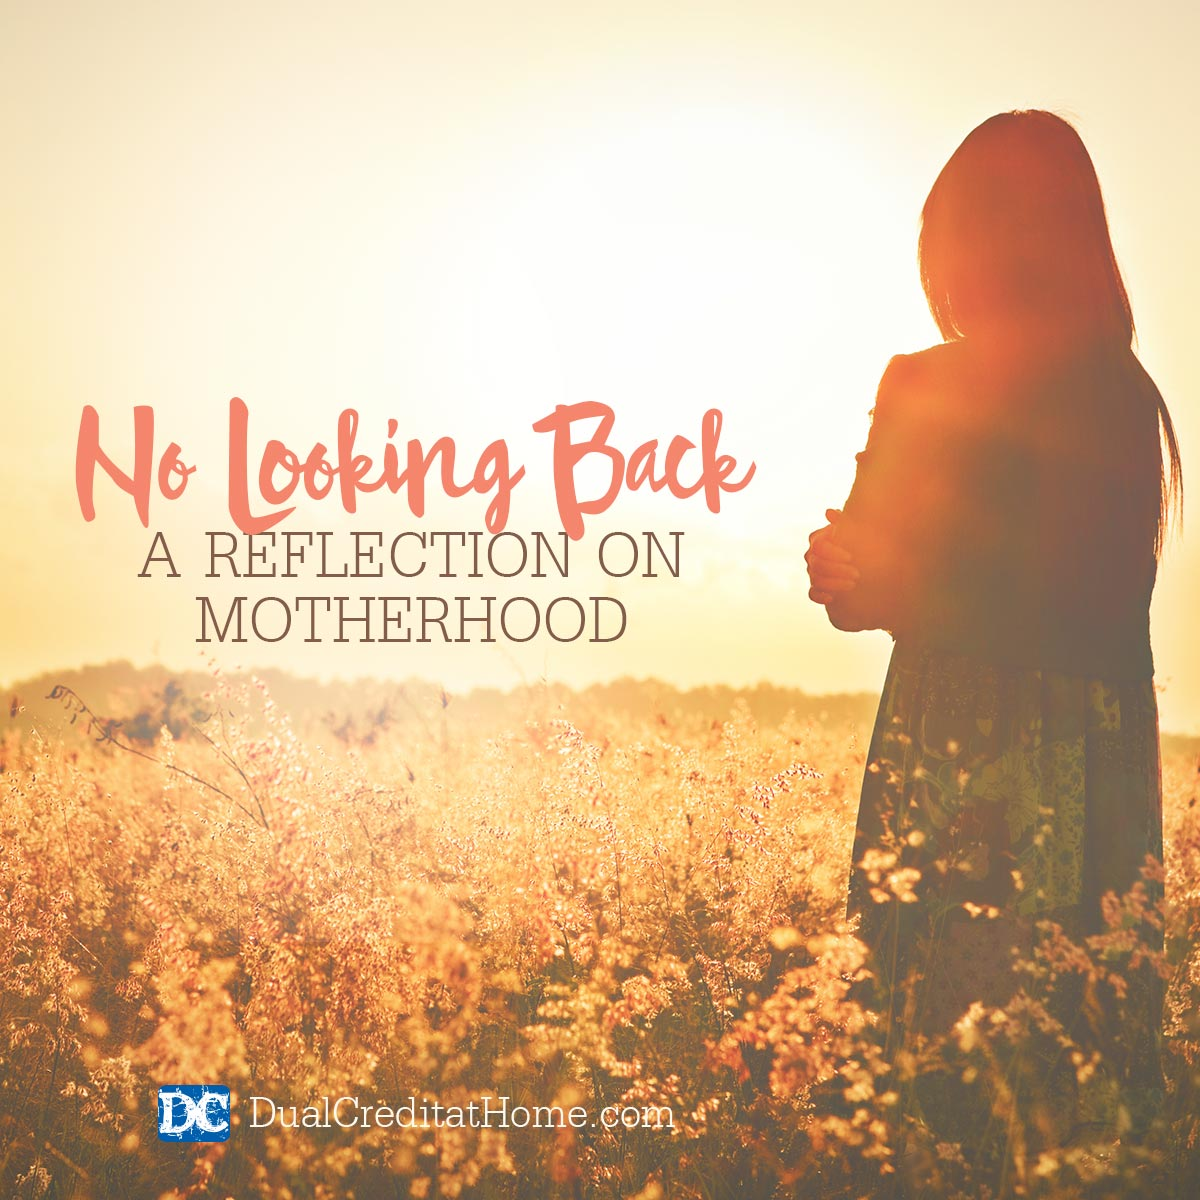 No Looking Back - A Reflection On Motherhood